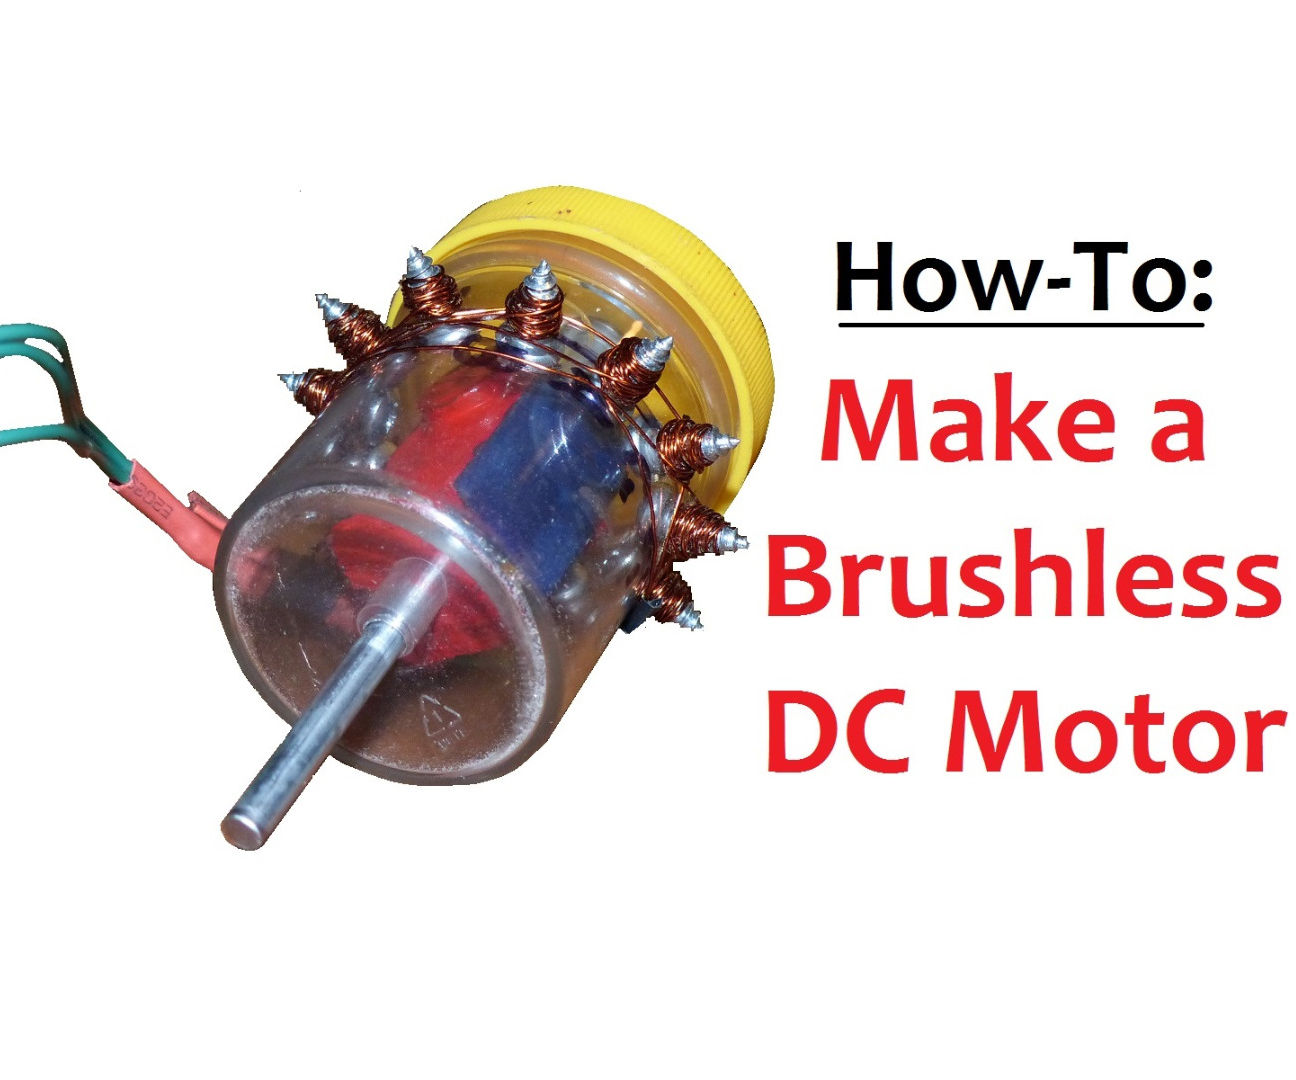 Make A Brushless DC Motor